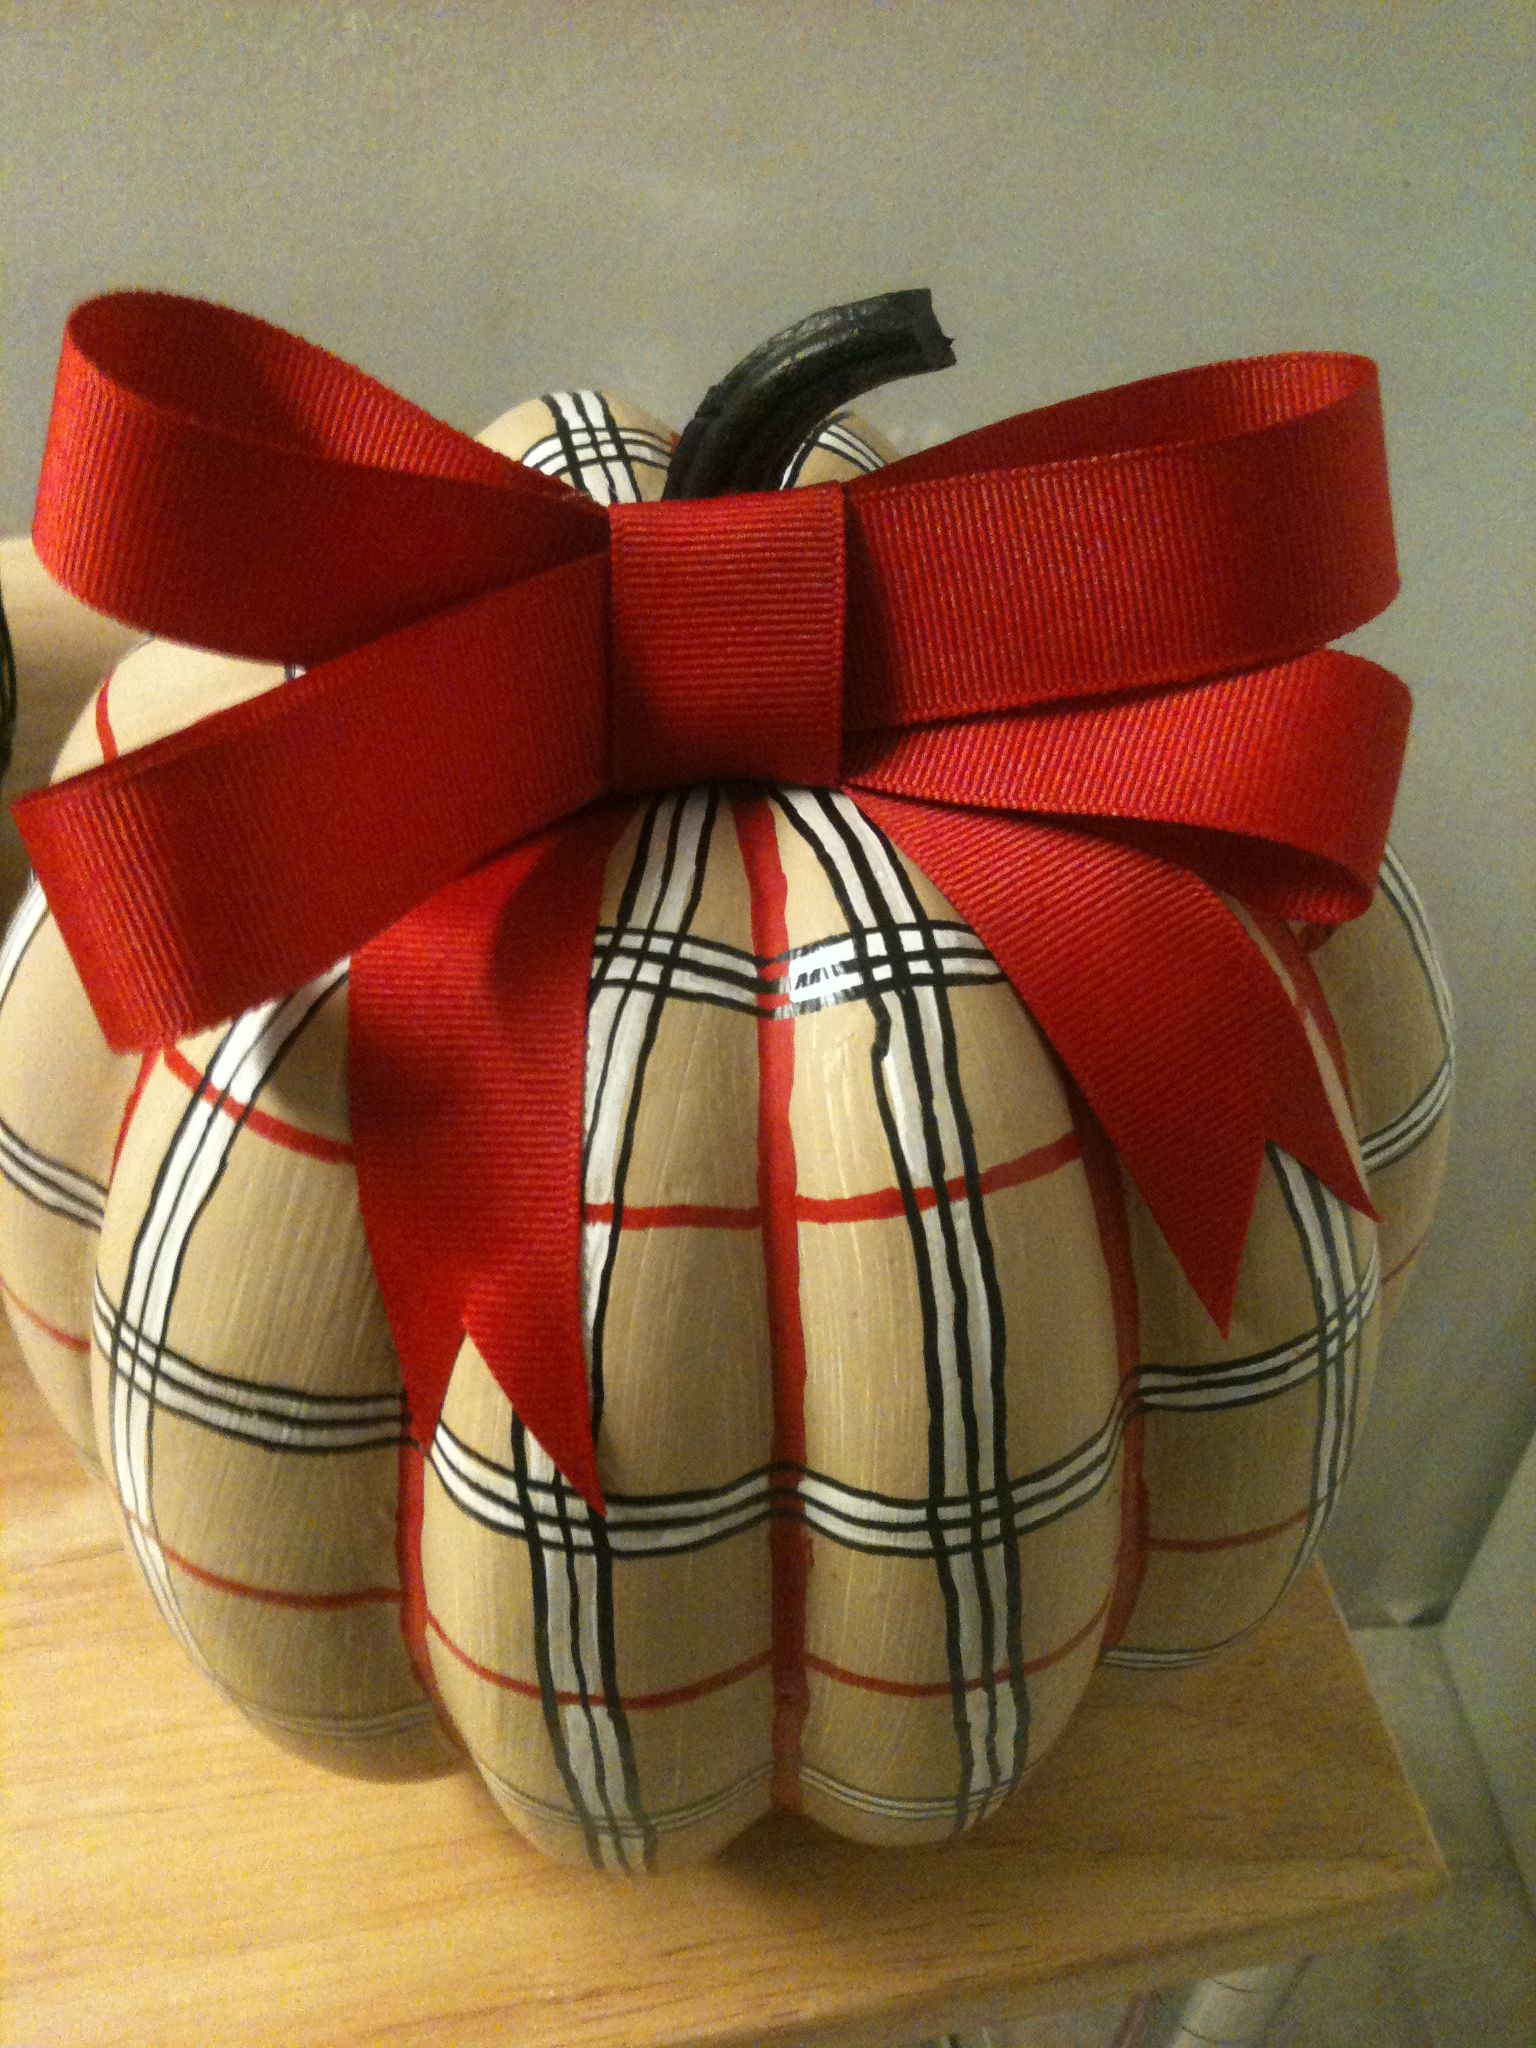 Pumpkin a la Burberry... Paint tan, use paint markers to draw the plaid pattern and add bow.